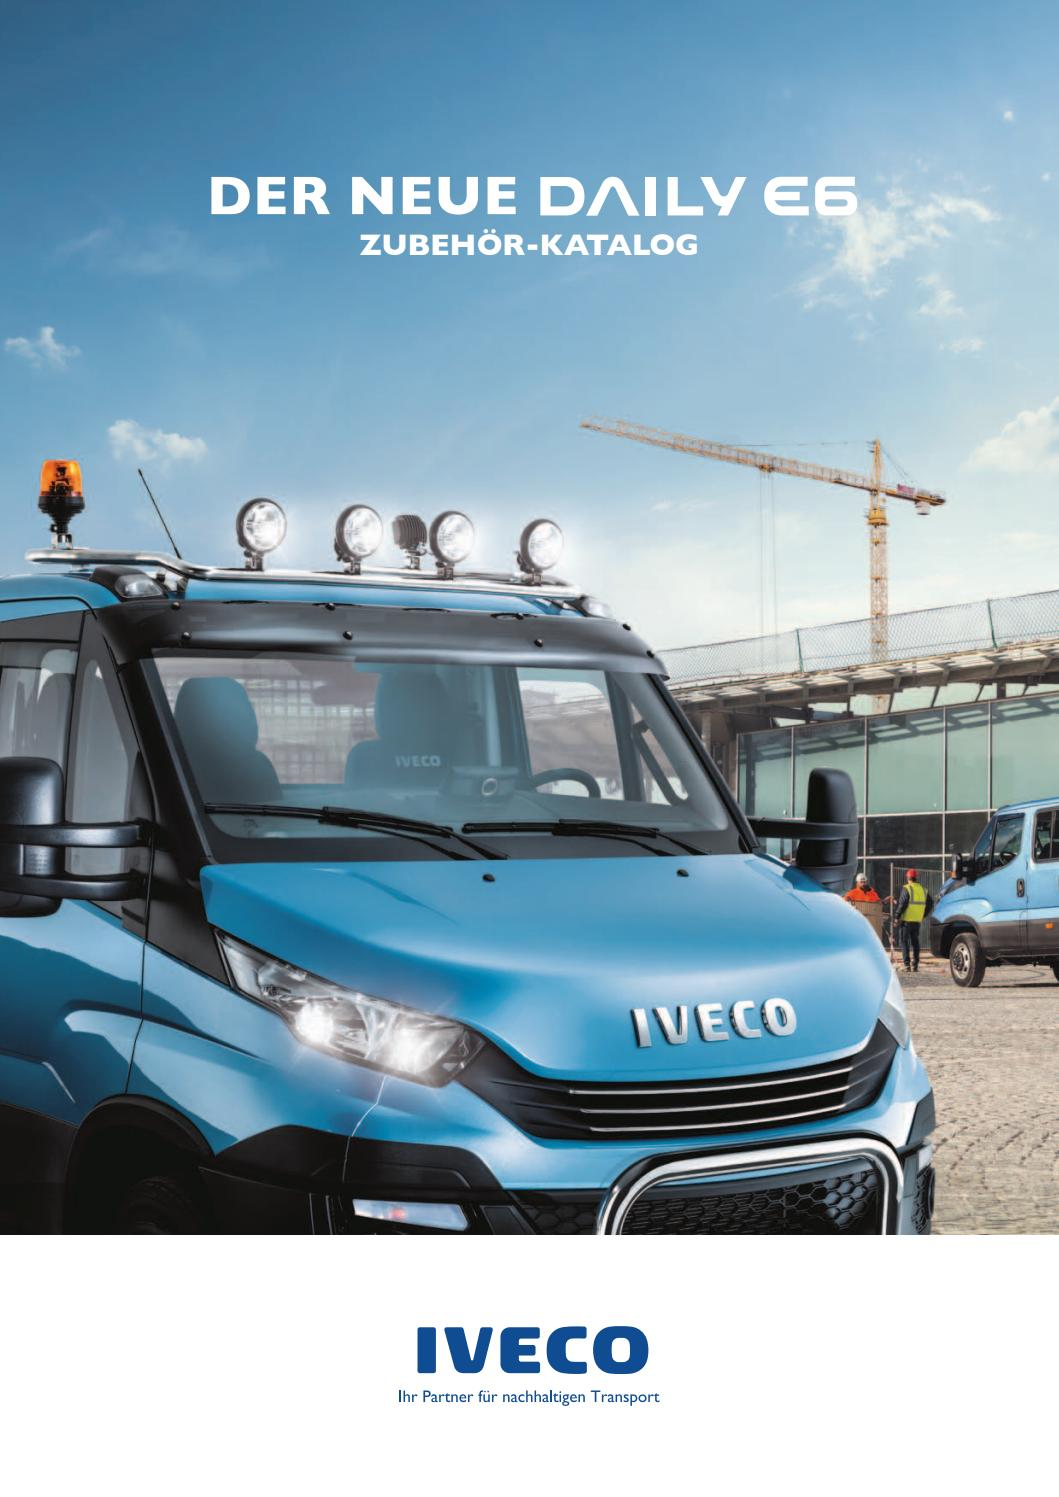 der neue daily euro 6 zubeh r katalog by iveco issuu. Black Bedroom Furniture Sets. Home Design Ideas